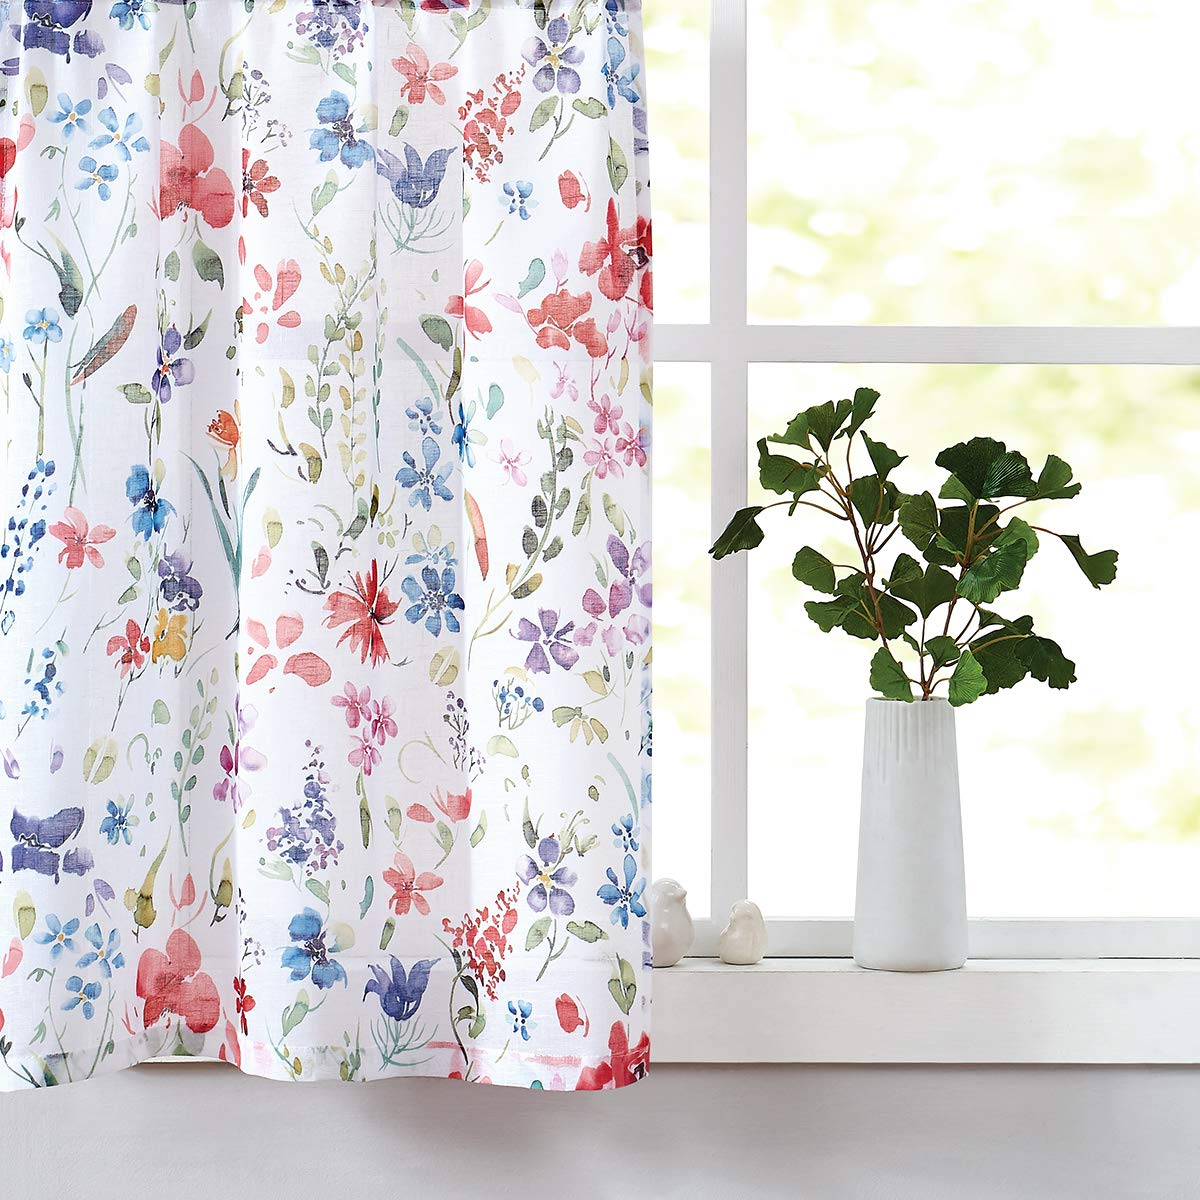 """Fragrantex Floral Print Kitchen Curtains 24"""" Multi Color Sheer Tier Curtain  Set For Windows Linen Cotton Like Curtain Panels For Laundry Room Tiers With Recent Floral Watercolor Semi Sheer Rod Pocket Kitchen Curtain Valance And Tiers Sets (Gallery 5 of 20)"""